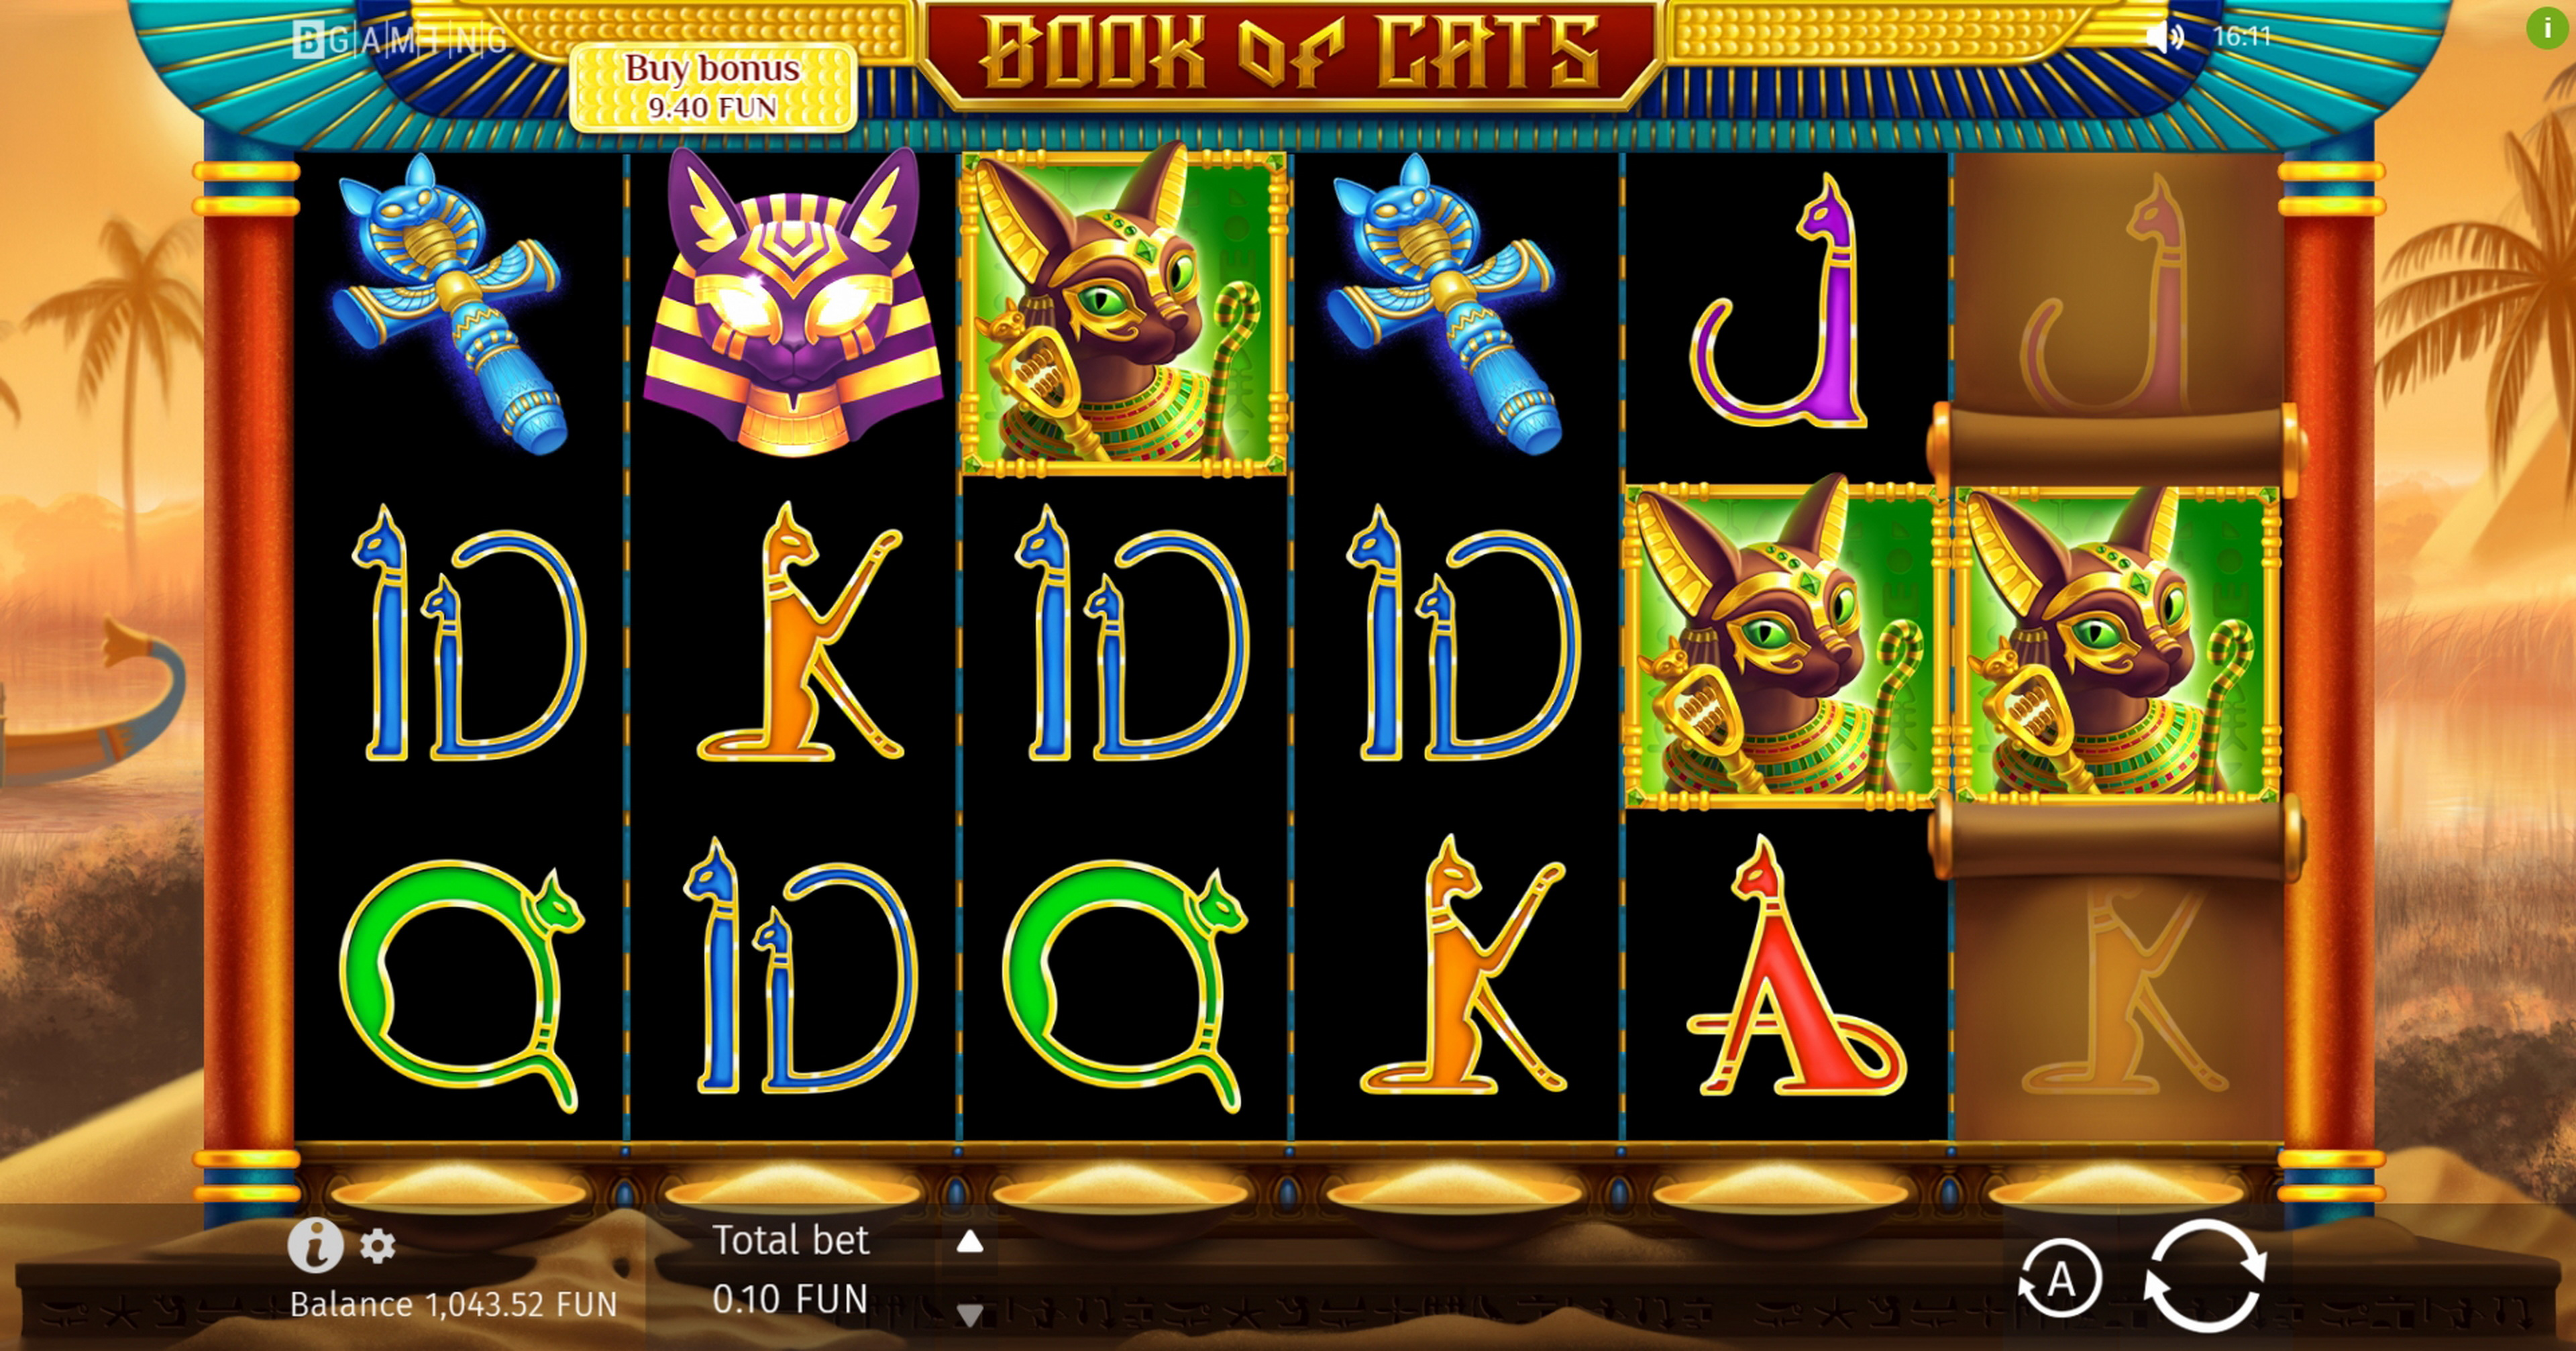 Reels in Book Of Cats Slot Game by BGAMING